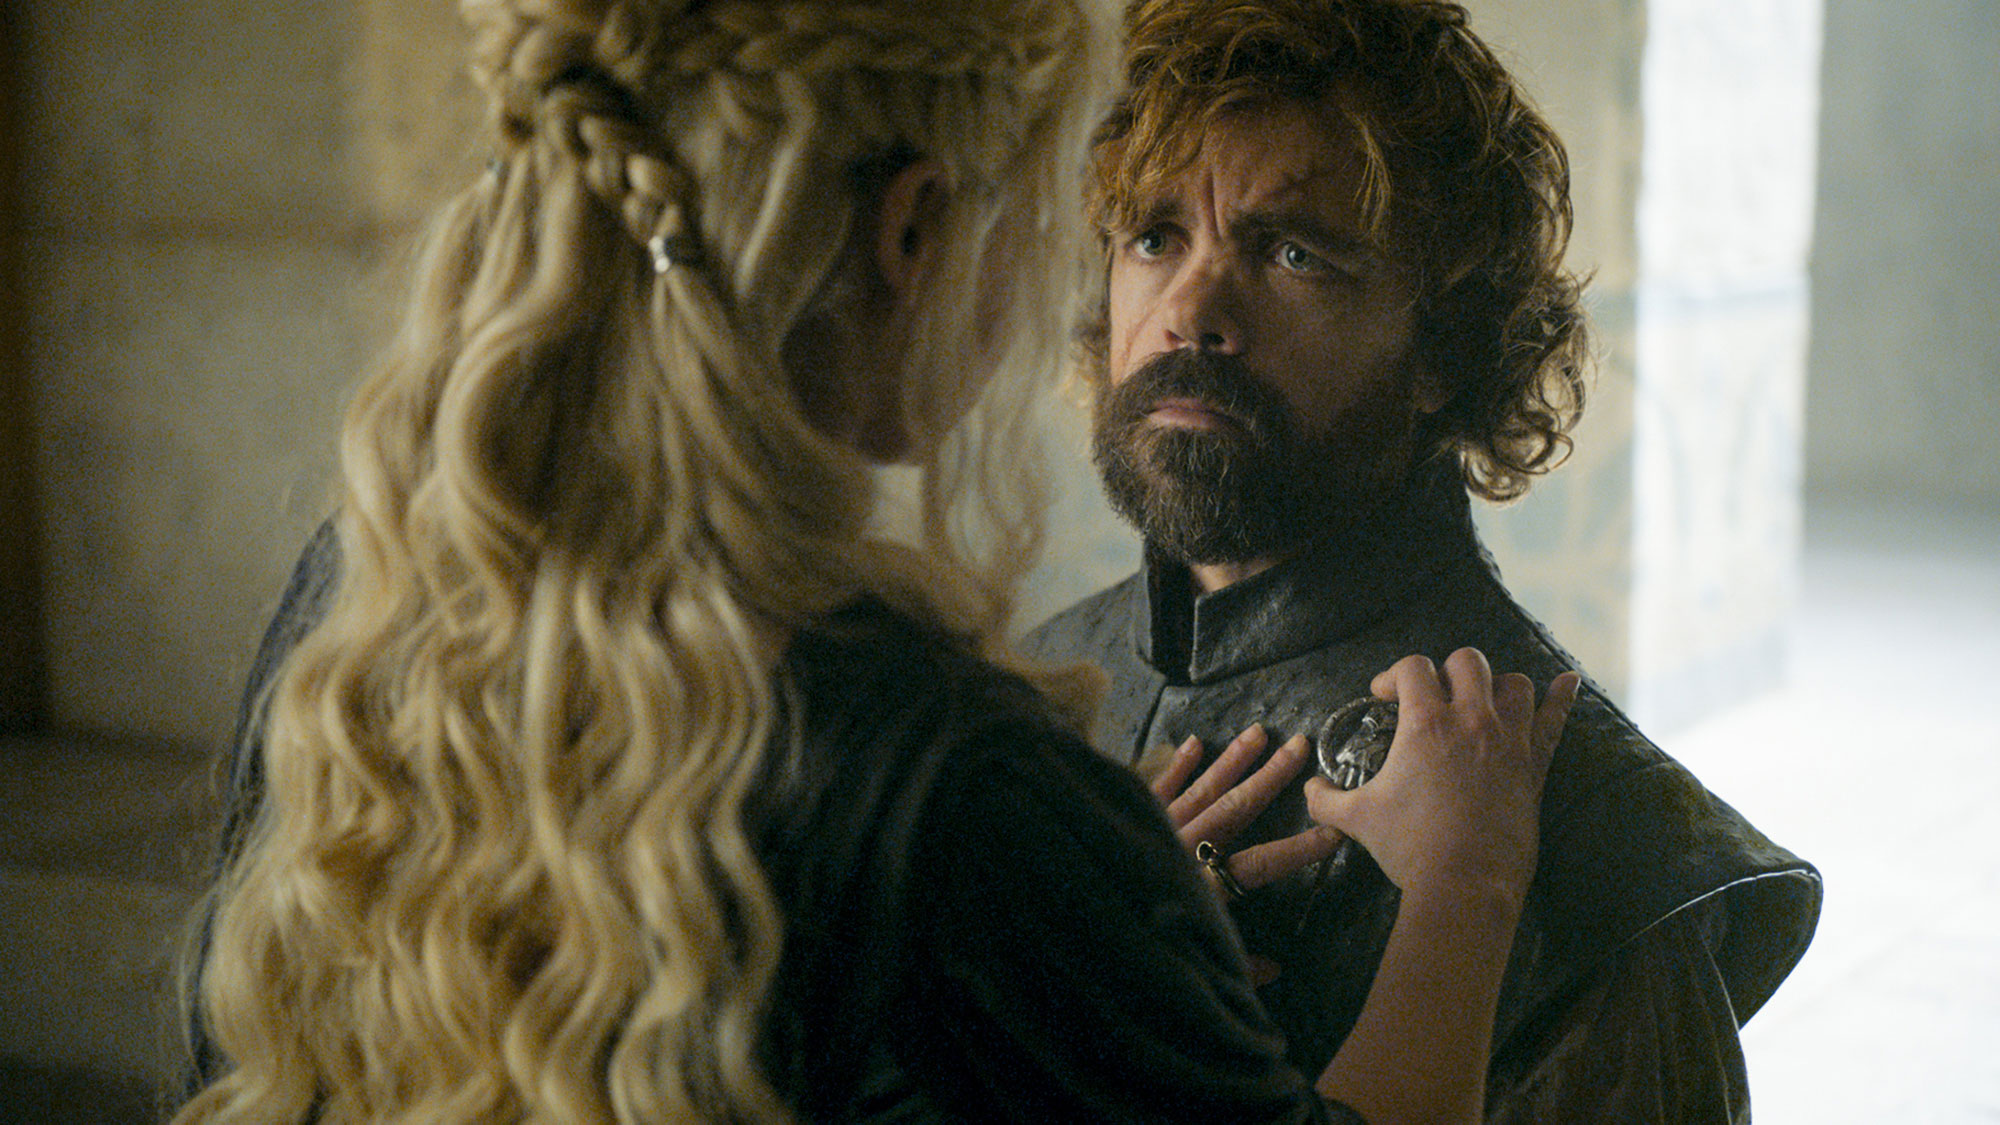 Game of Thrones braids hairstyles hair Emilia Clarke, Peter Dinklage - Our favorite part of this season six style? The metallic accessories she used keep everything in place.